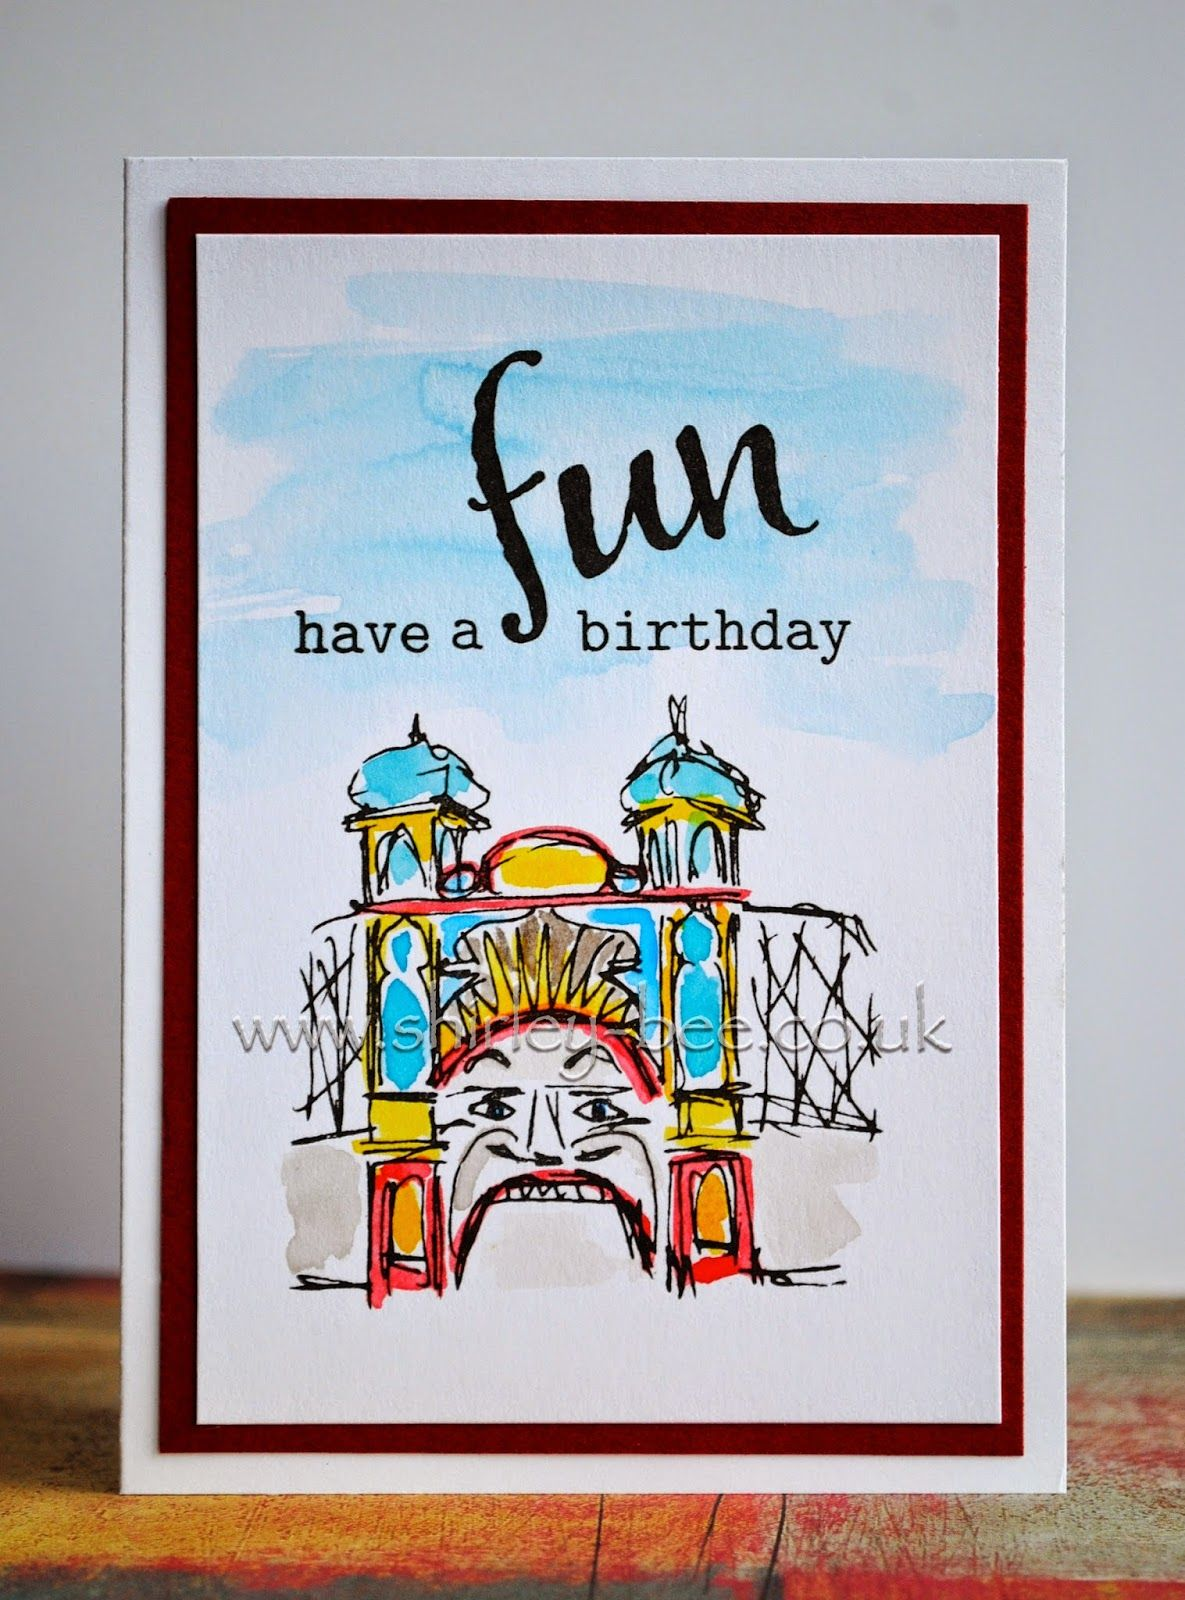 shirley-bee's stamping stuff: A Fun Birthday and A Blog Hop With A Difference